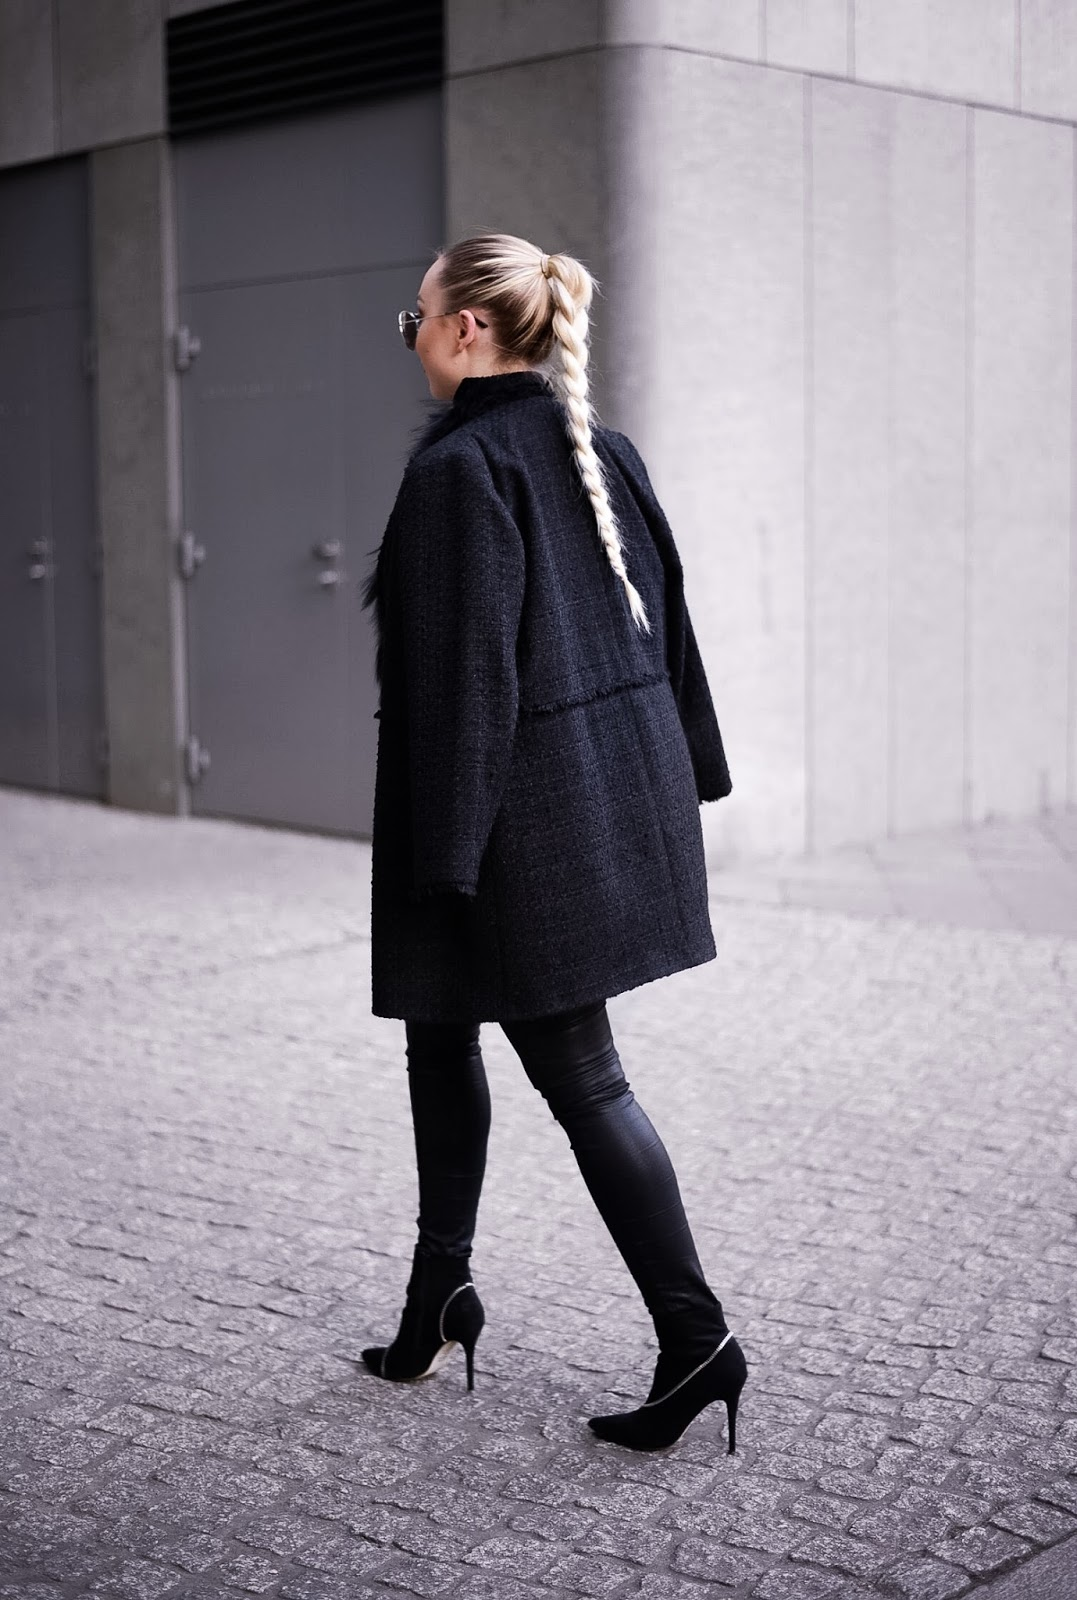 fashion photography tips_blogging tips_all black outfits